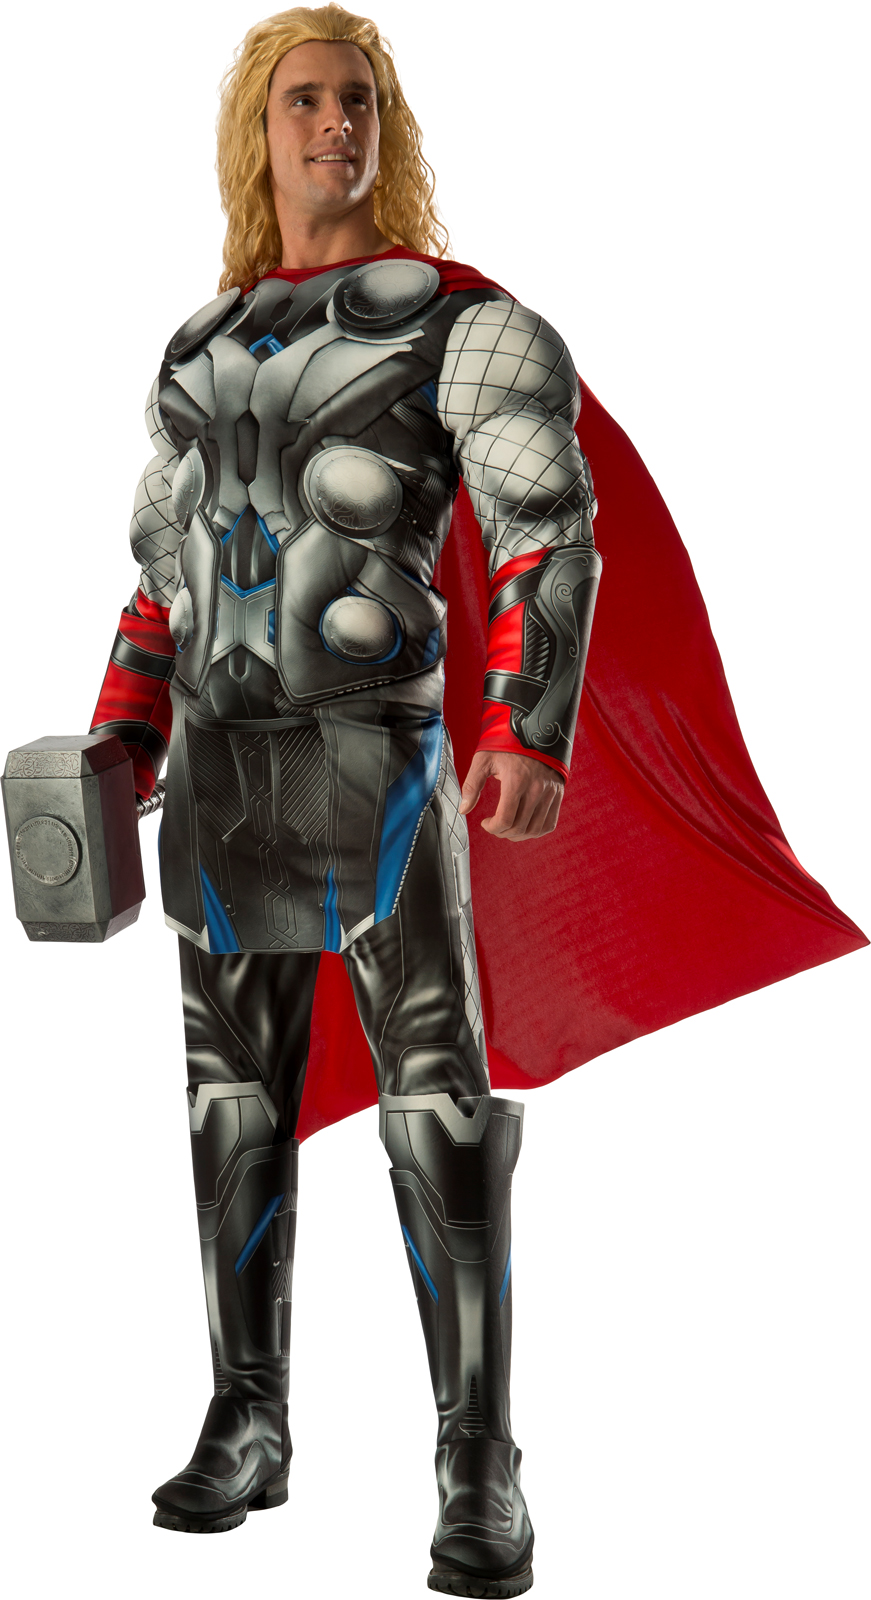 Avengers 2 - Age of Ultron: Deluxe Adult Thor Costume ...